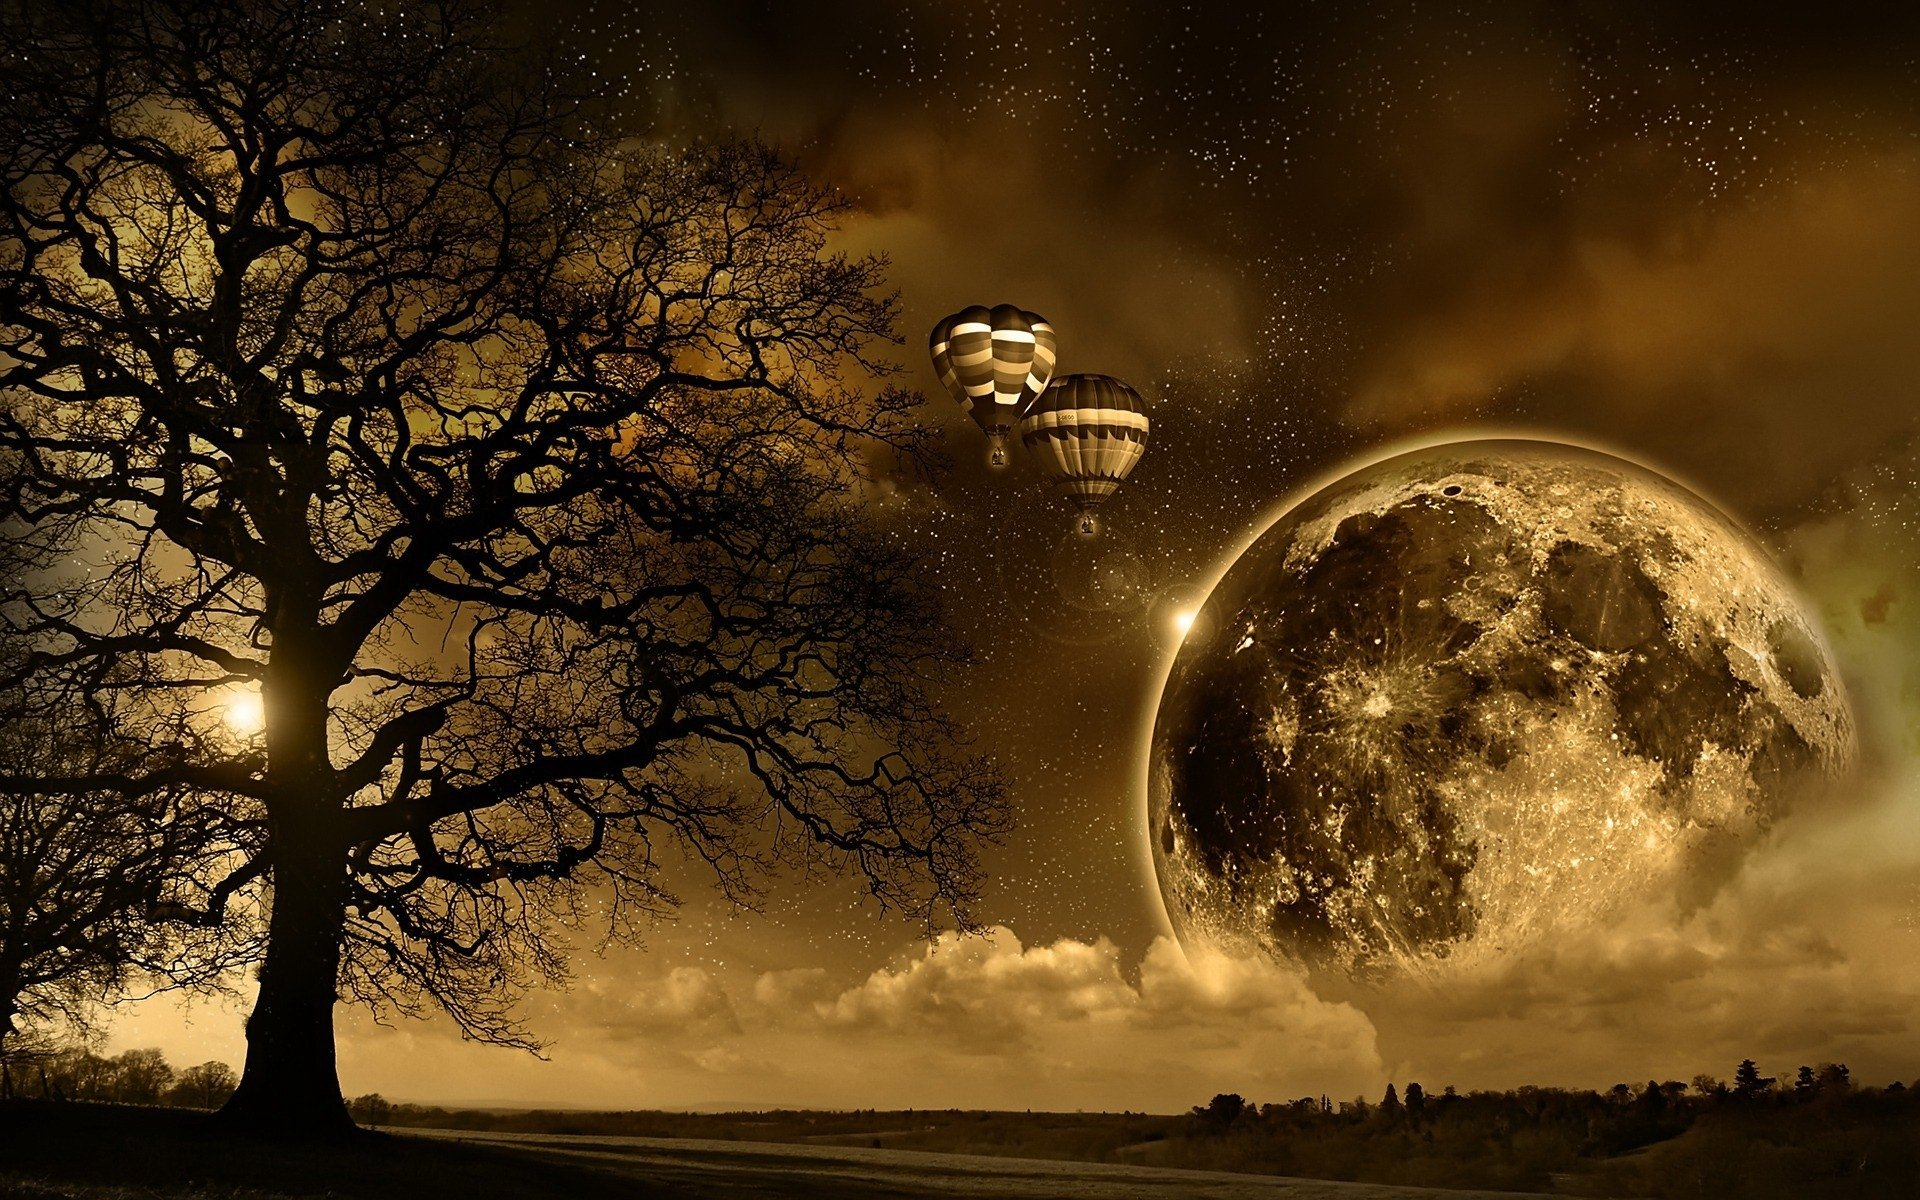 CGI - Space  Artistic Hot Air Balloon Moon Fantasy Landscape Tree Brown Wallpaper